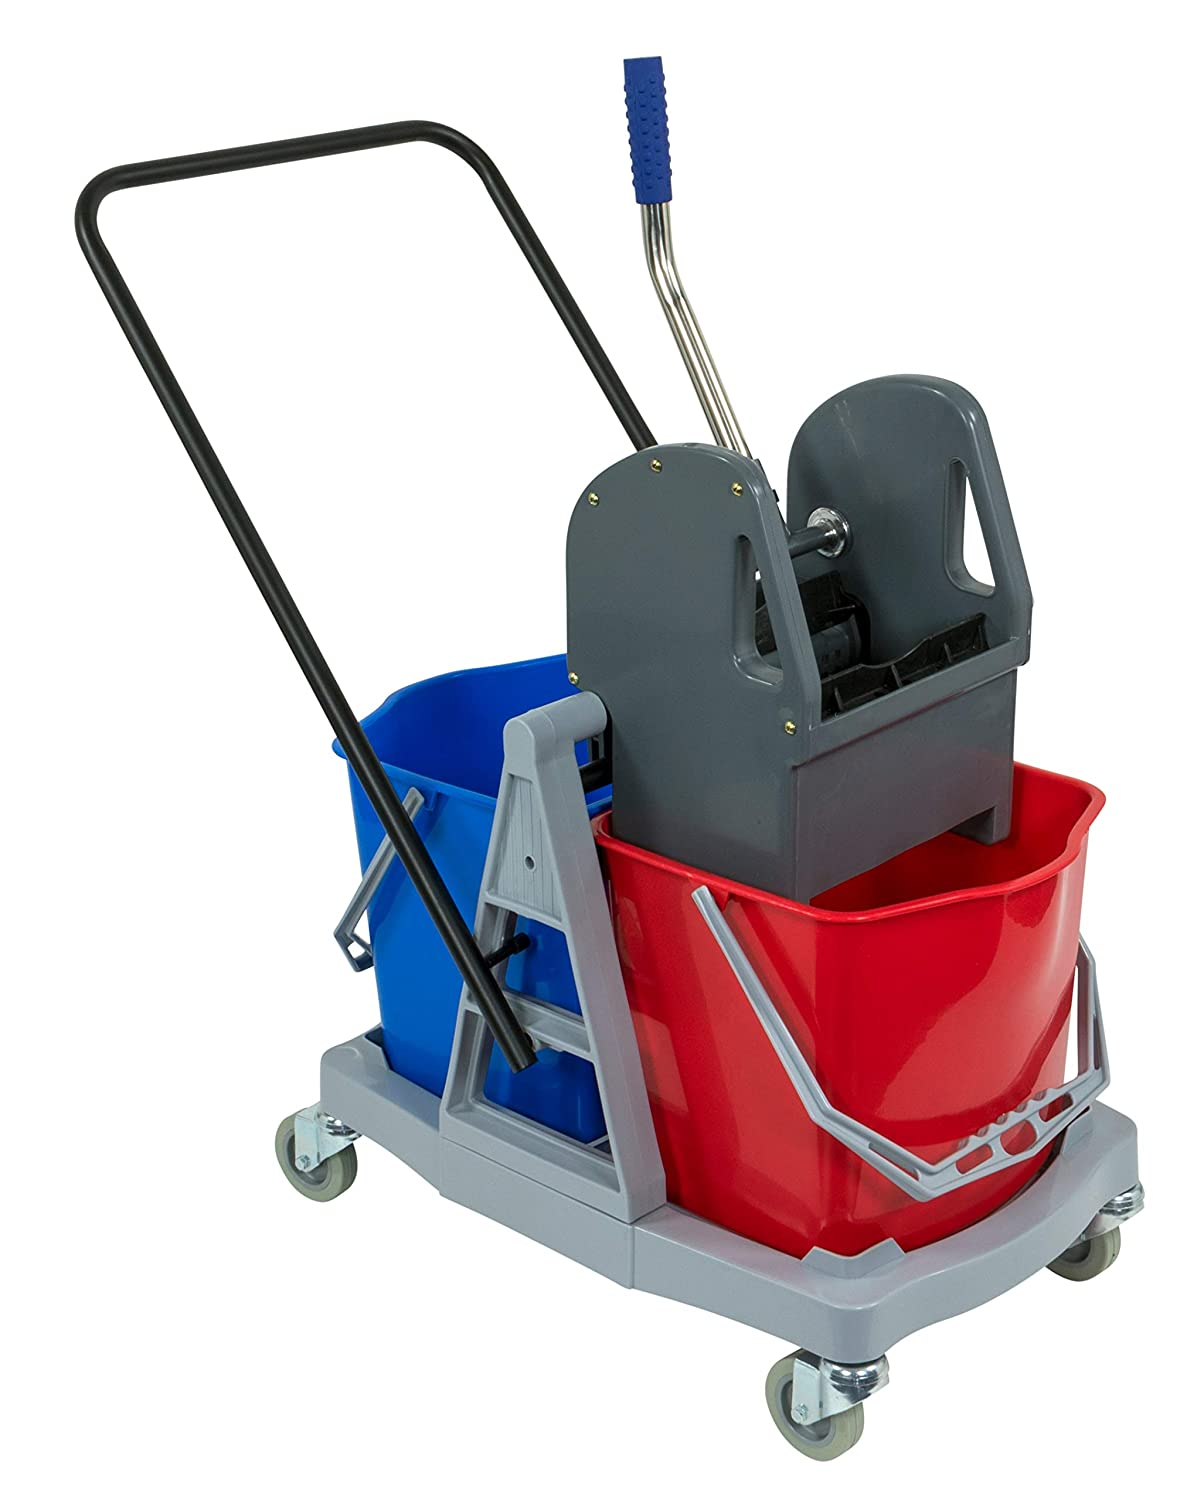 Cleaning trolley Sprintus 2x17 L cleaning trolley grey Plastic, Double baking MOP press 301001